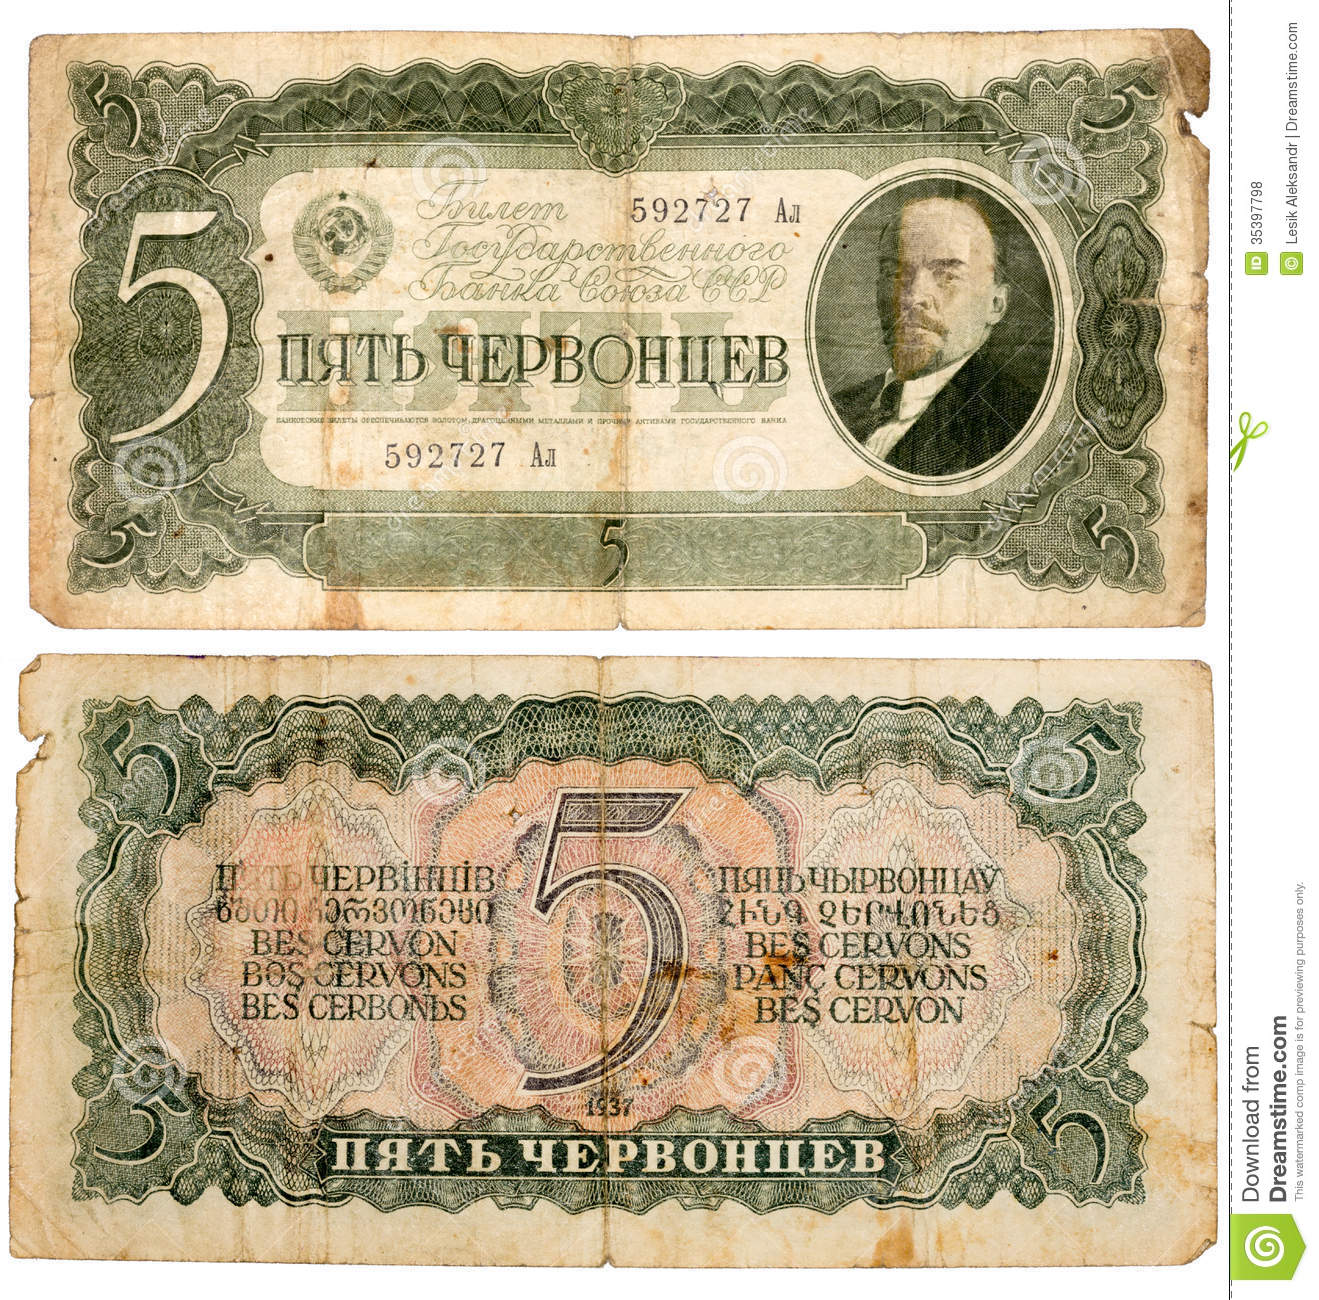 1937 a banknote of 5 chervonets worth former currency of the russian